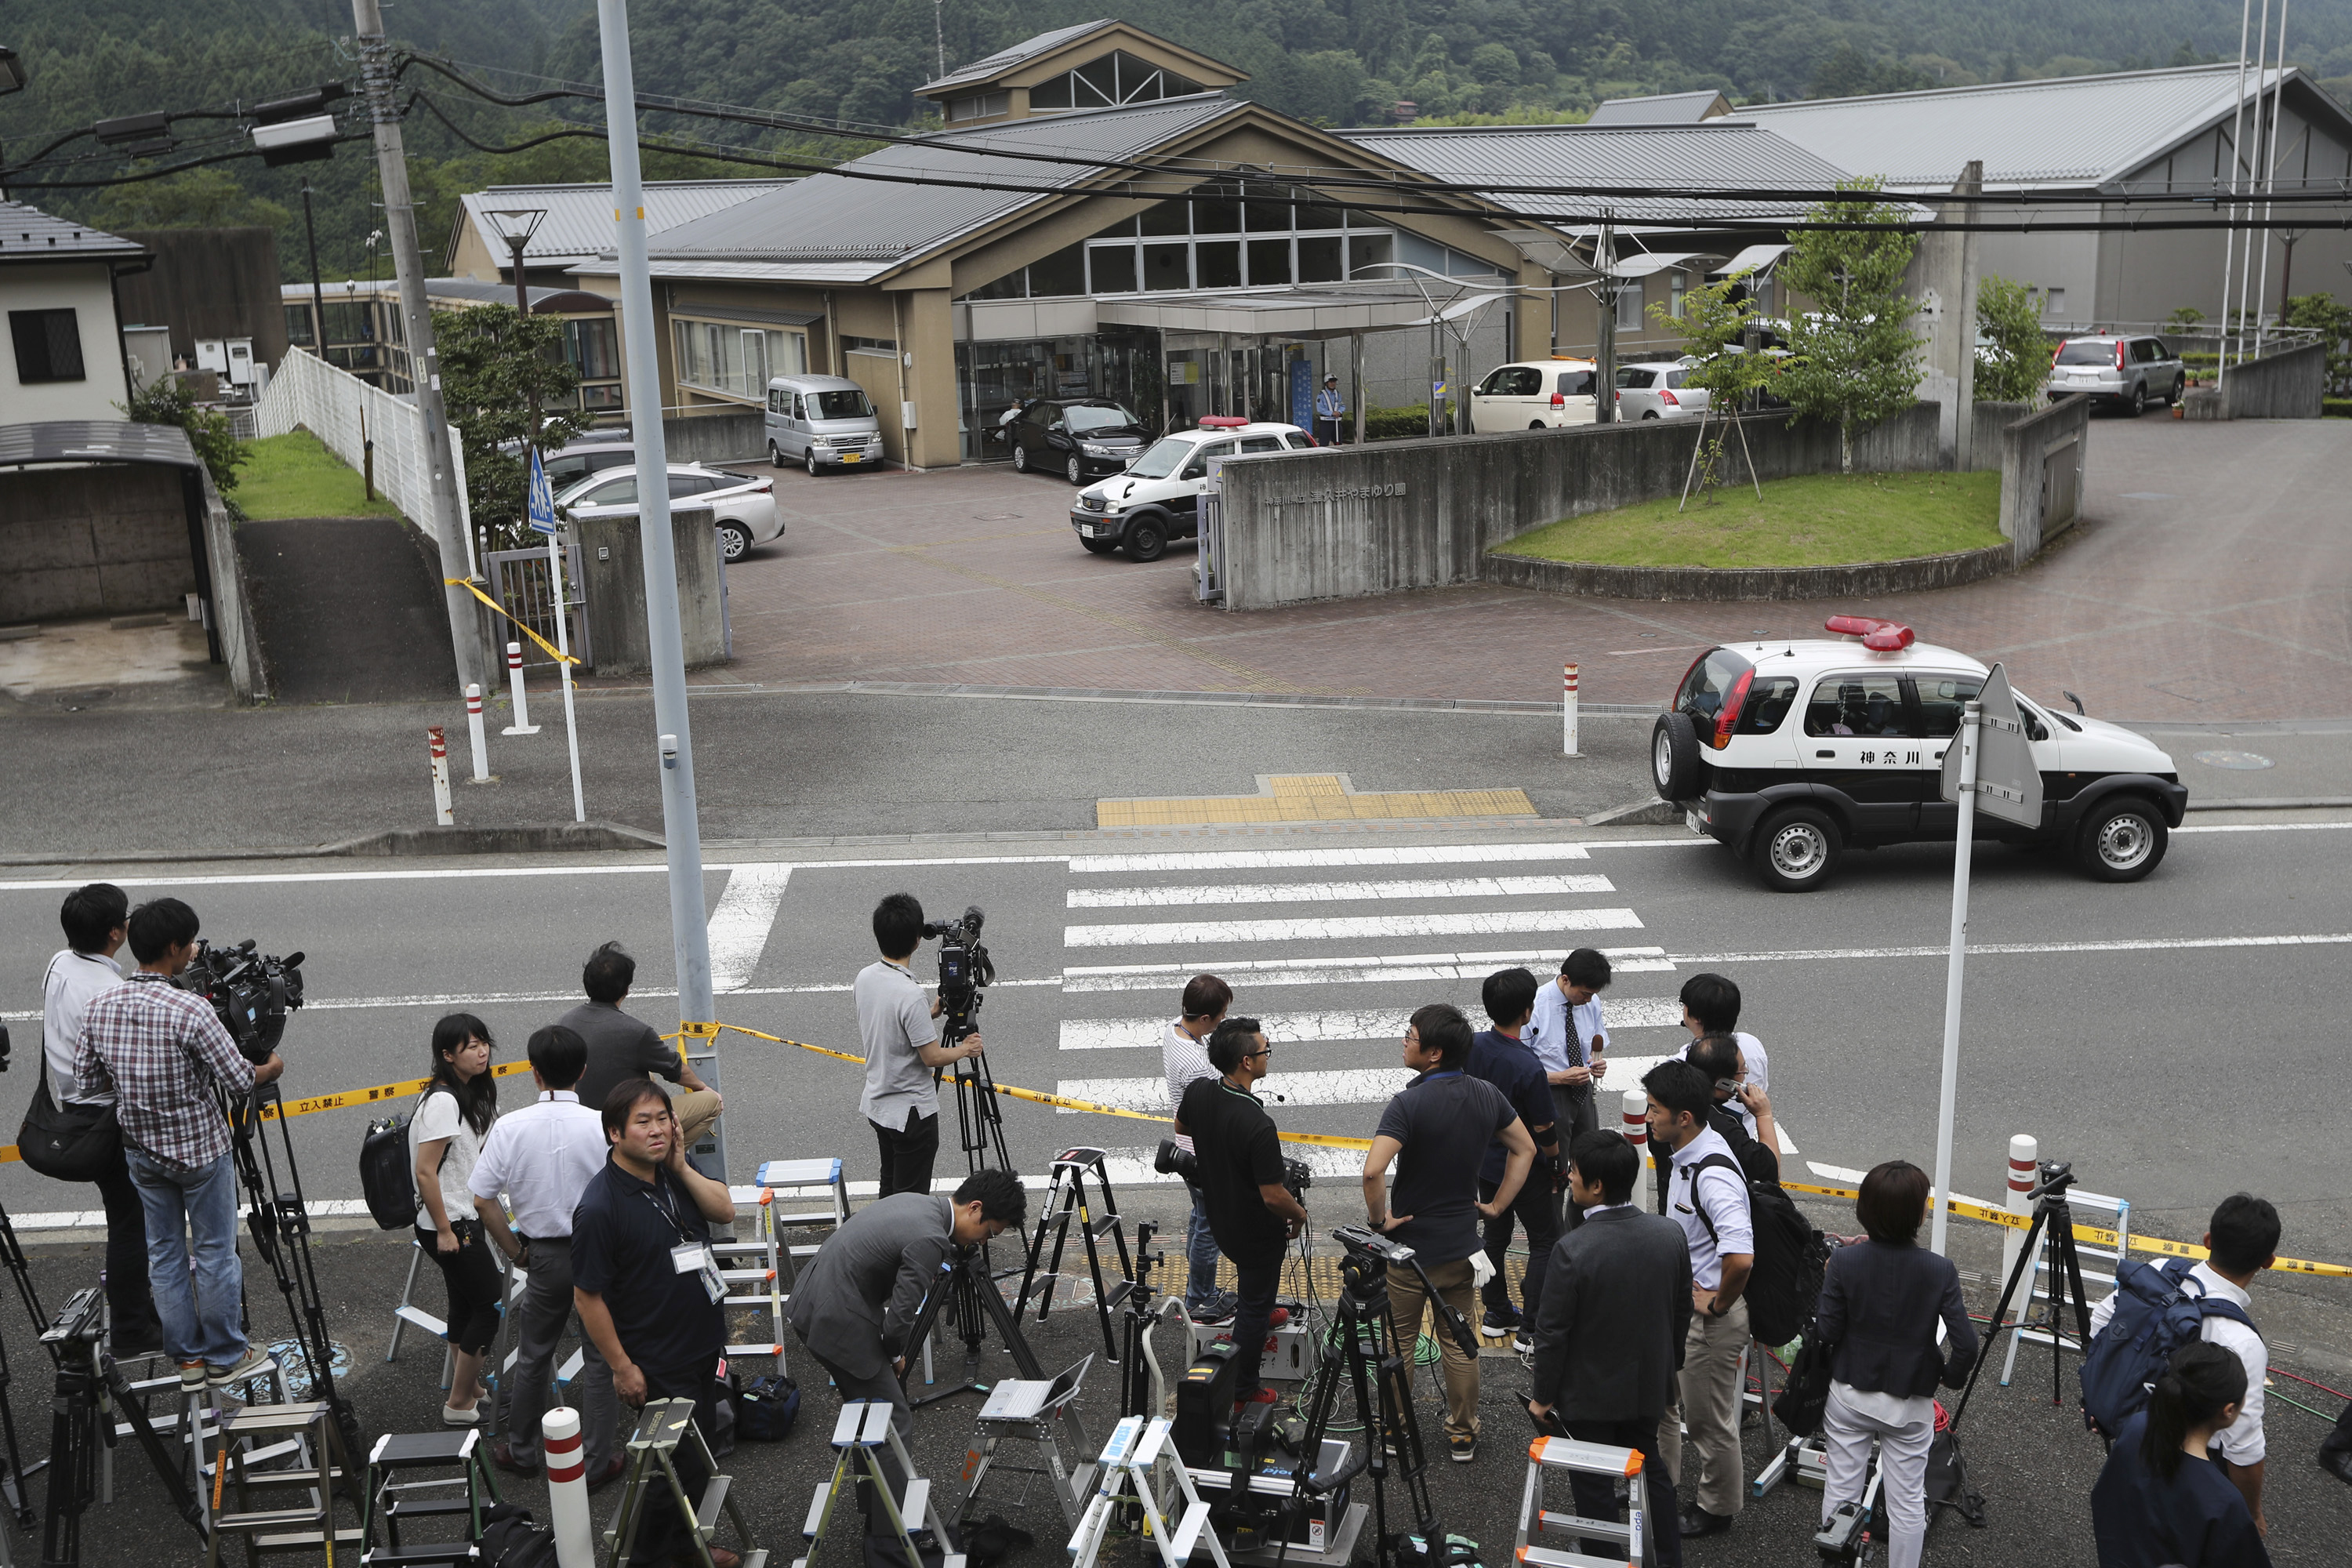 In this July 26, 2016, file photo, journalists gather in front of Tsukui Yamayuri-en, a facility for the handicapped where a former care home employee killed disabled people, in Sagamihara, outside Tokyo.